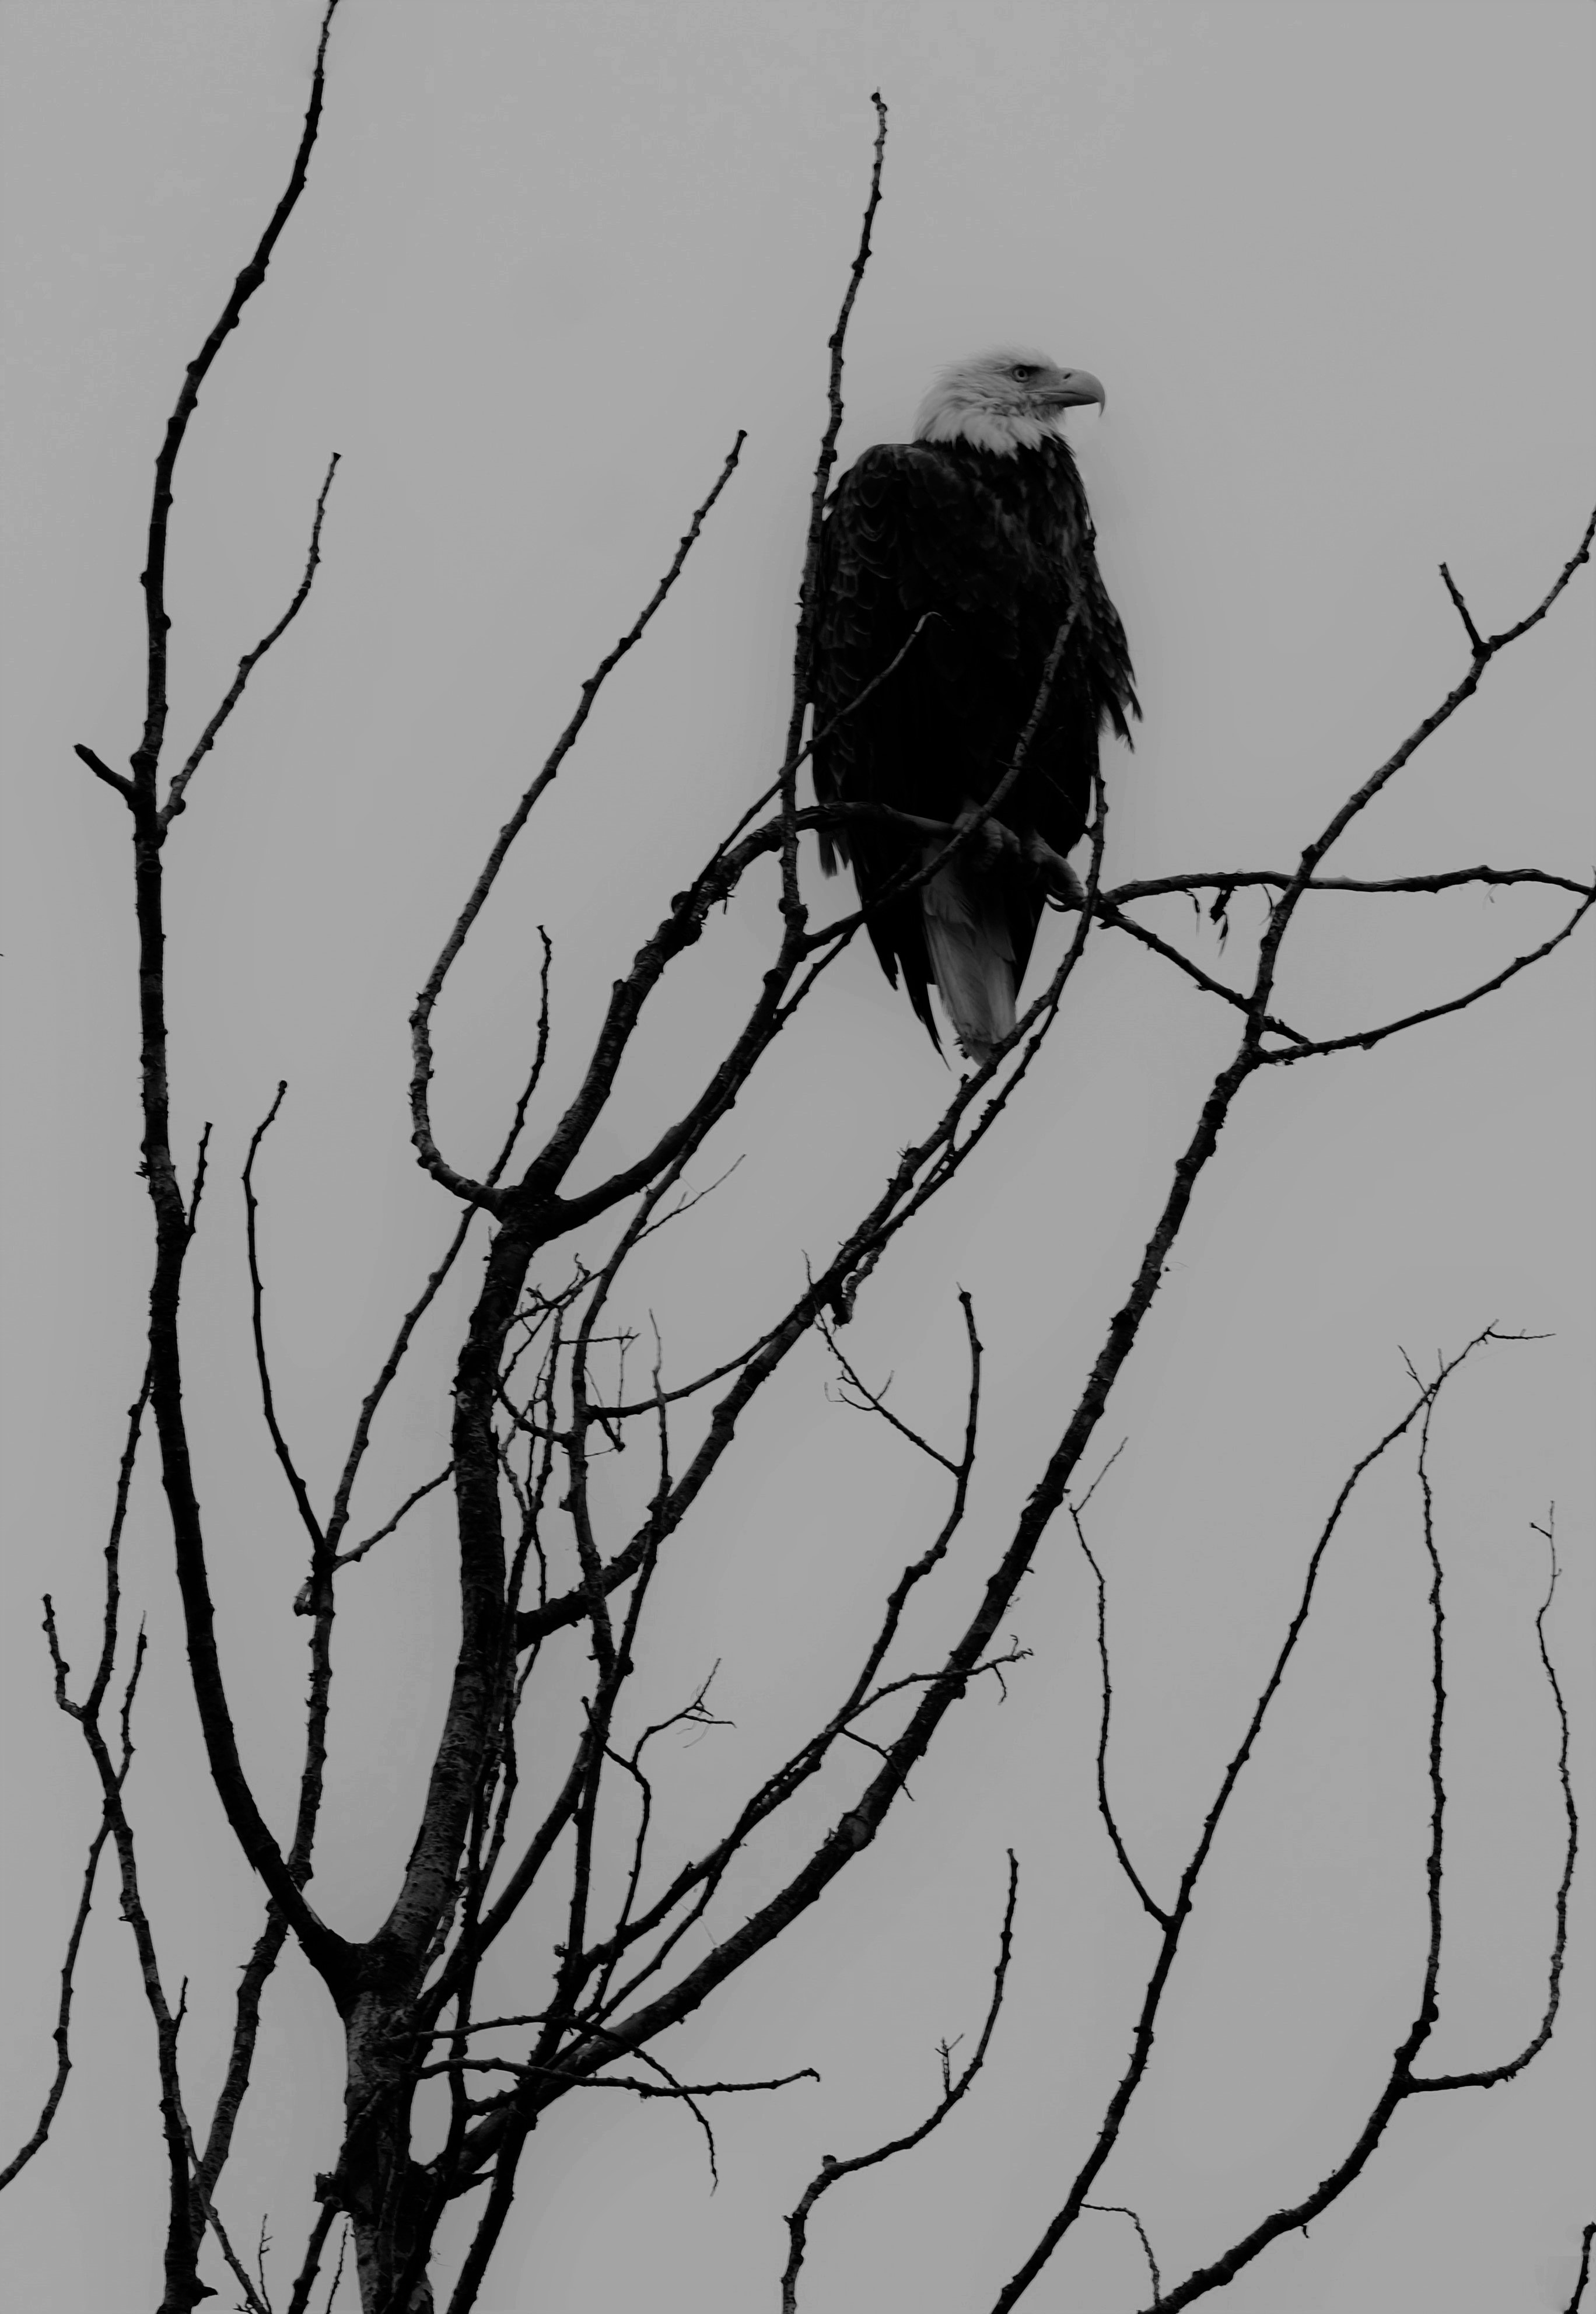 127265 download wallpaper Animals, Eagle, Bw, Chb, Bird, Predator, Branches screensavers and pictures for free